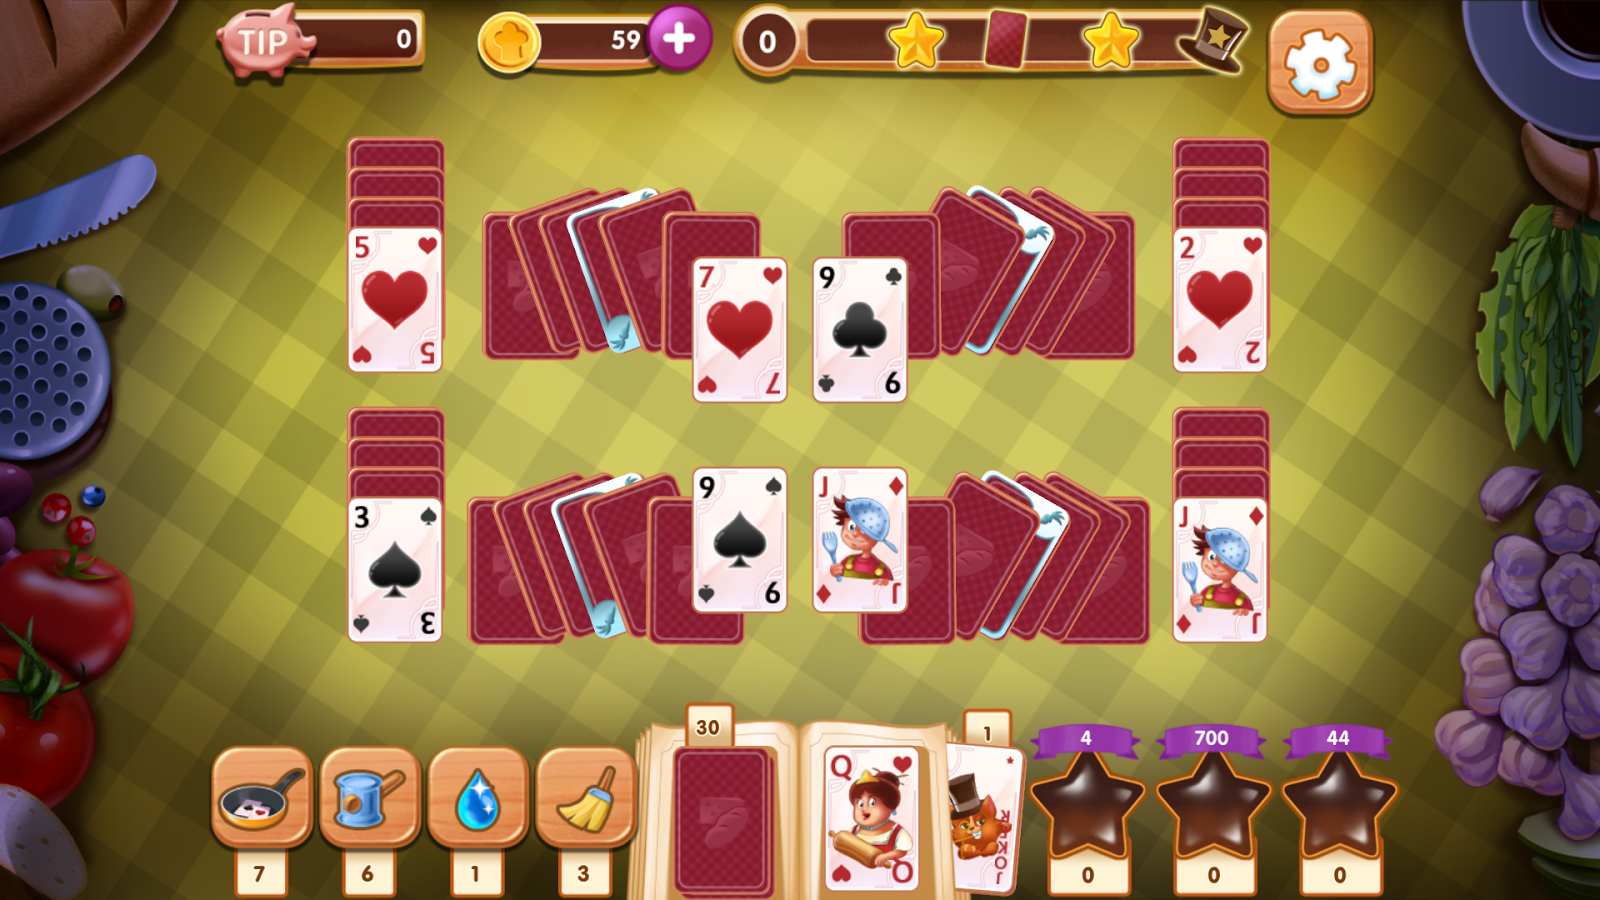 Tasty Solitaire Classic Screenshot 2